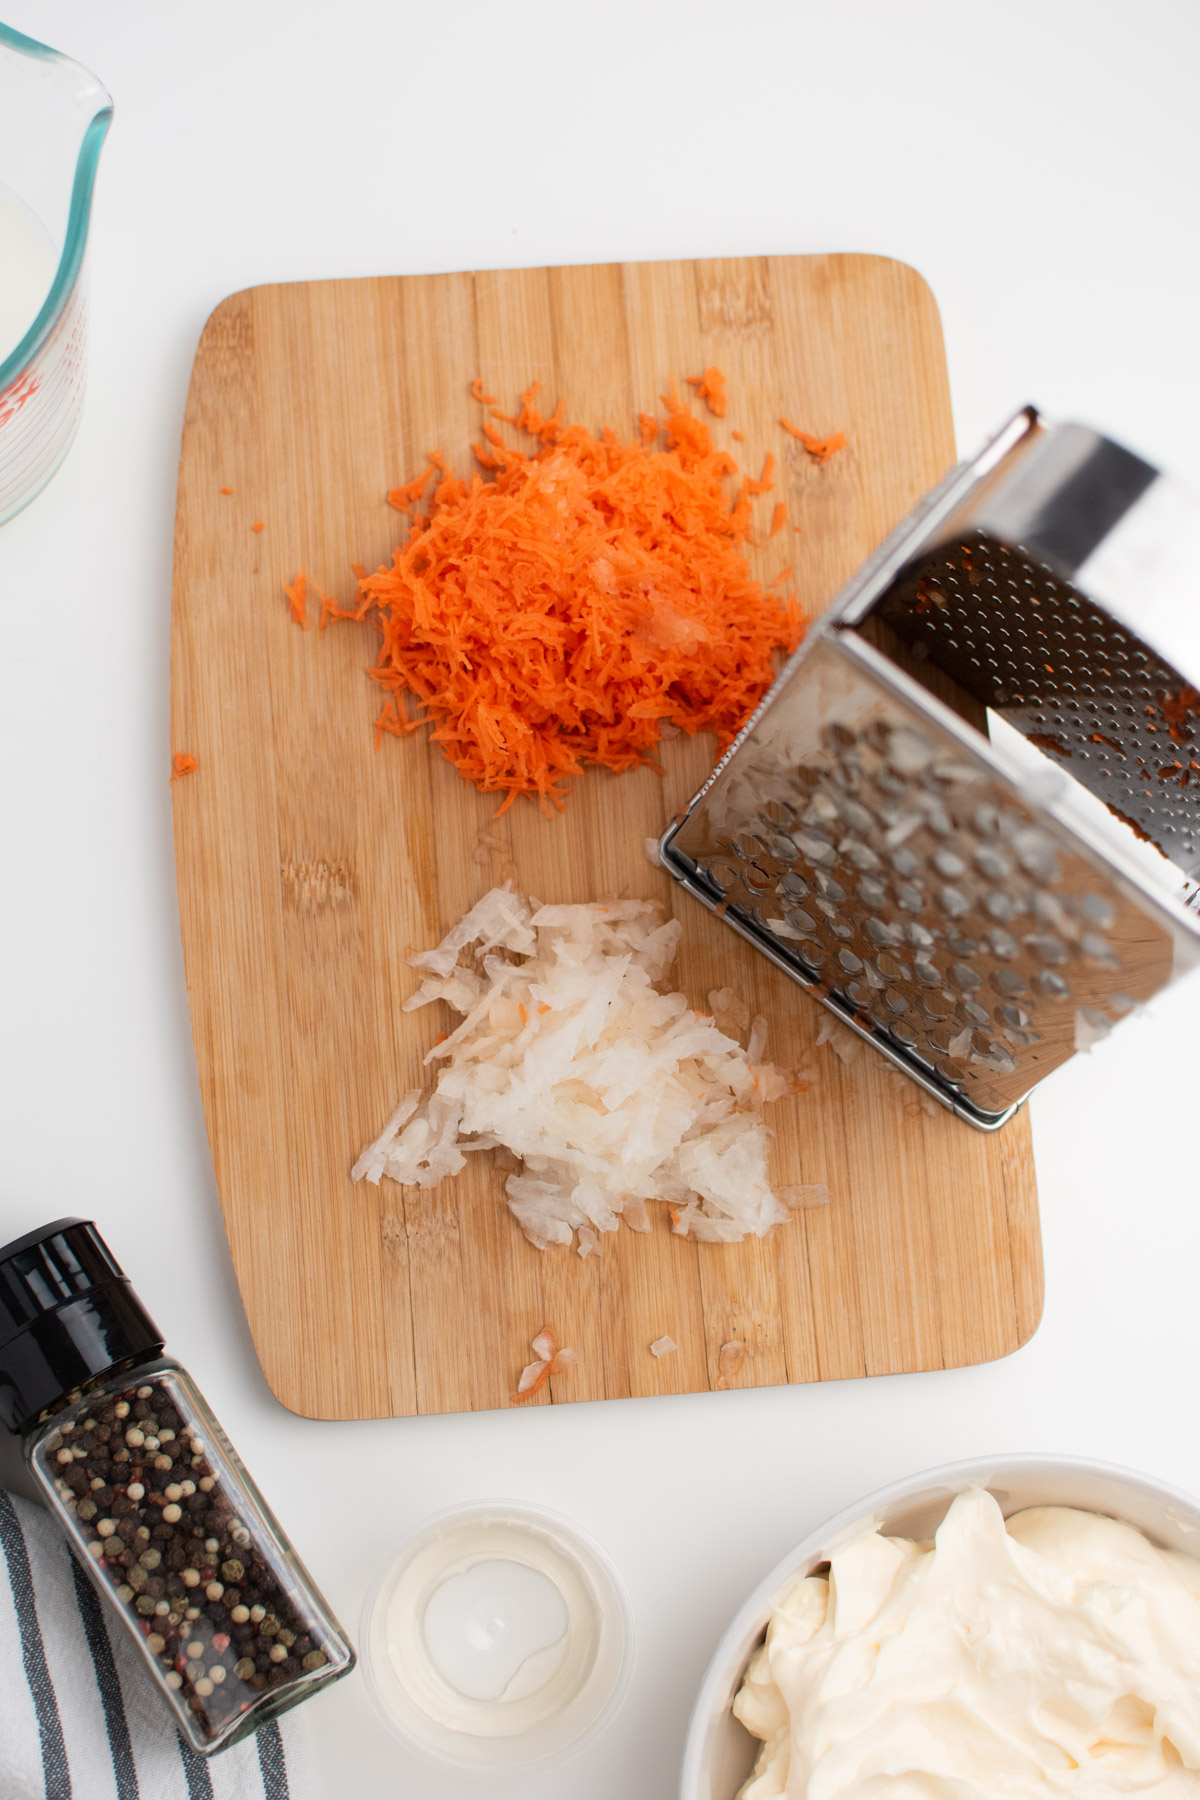 Shredded carrots and onion on wood cutting board next to metal grater.